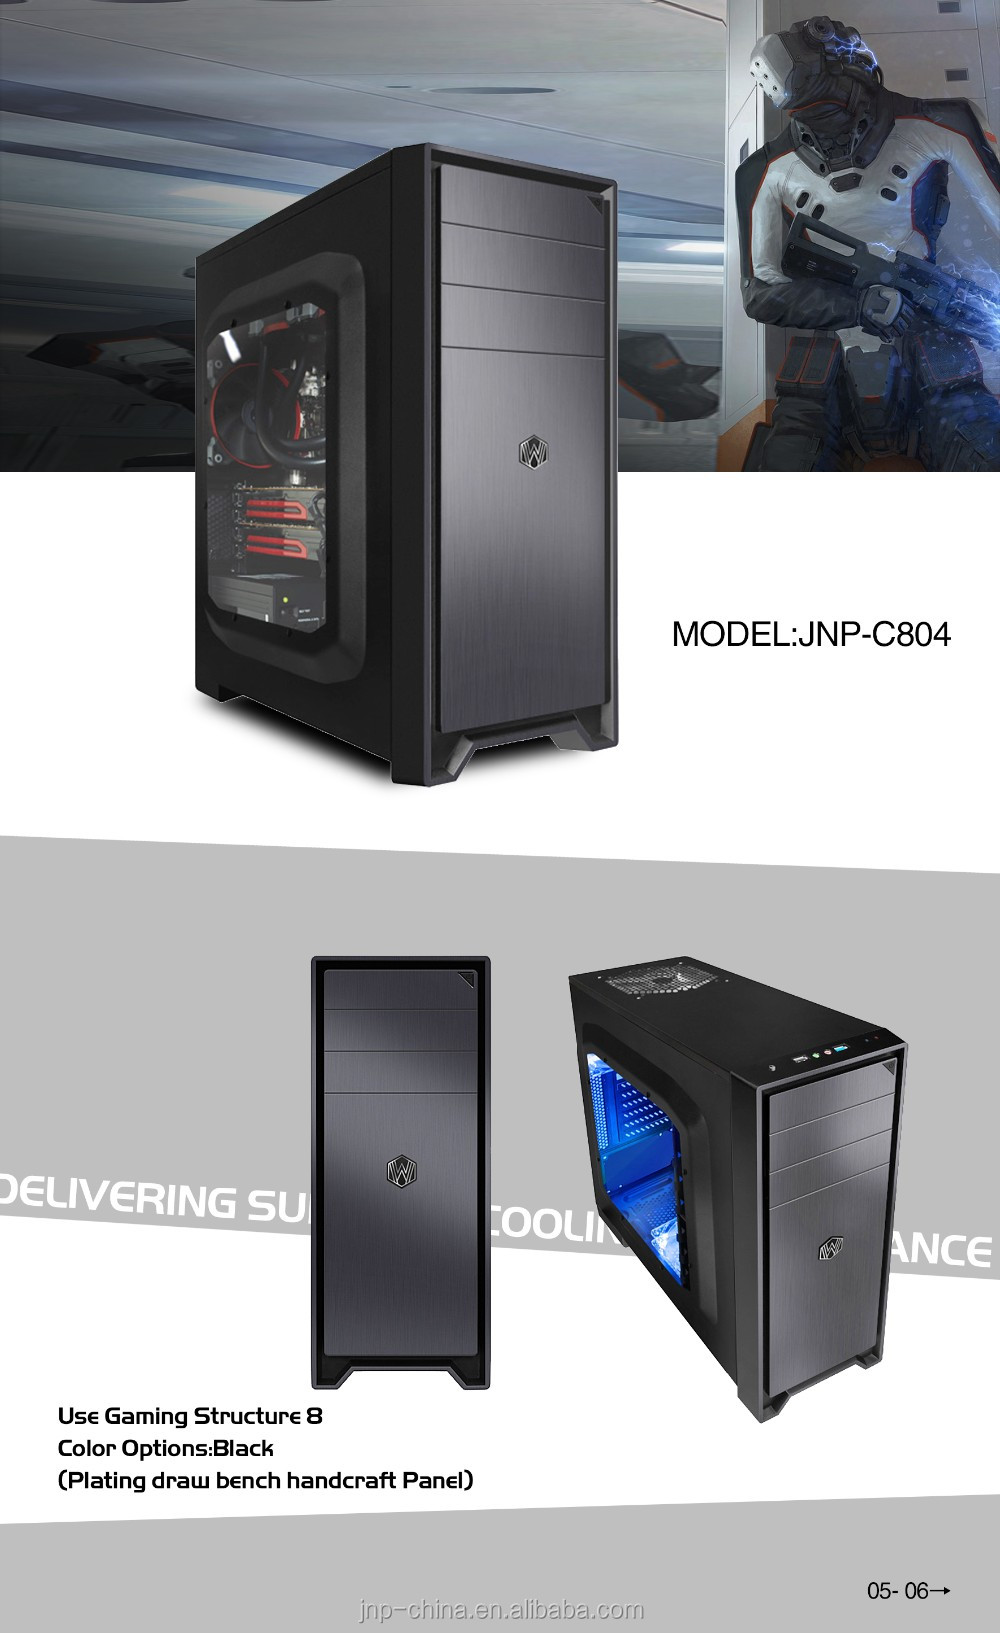 Modern ATX Tower Computer Gaming Case and Tower with 4 USB ports